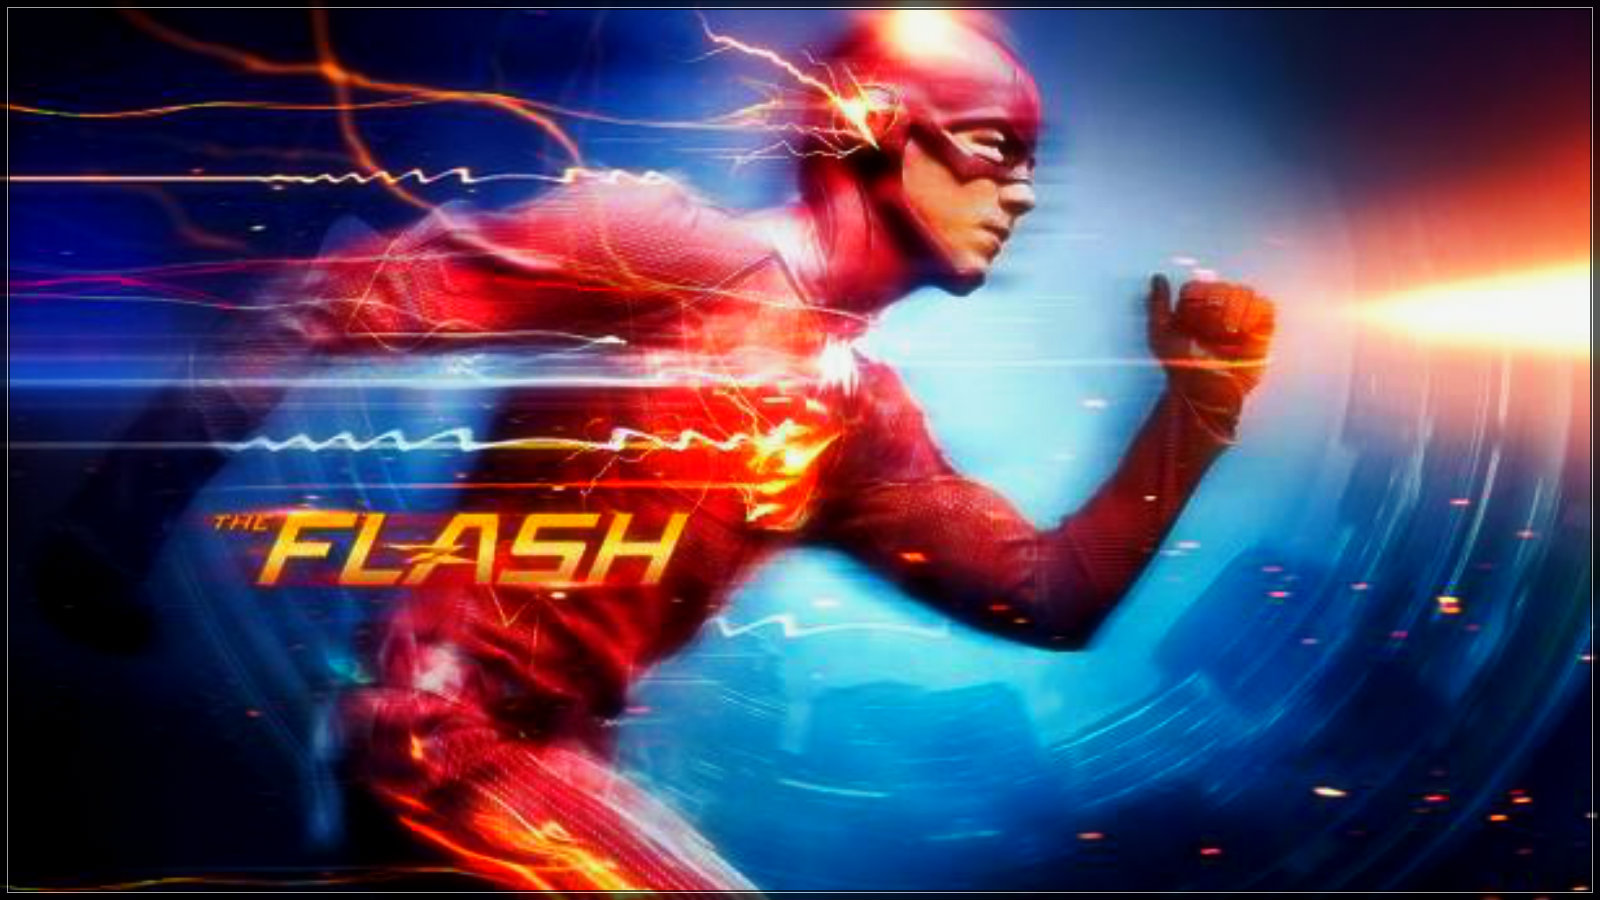 The Flash CW images The Flash HD wallpaper and background photos 1600x900